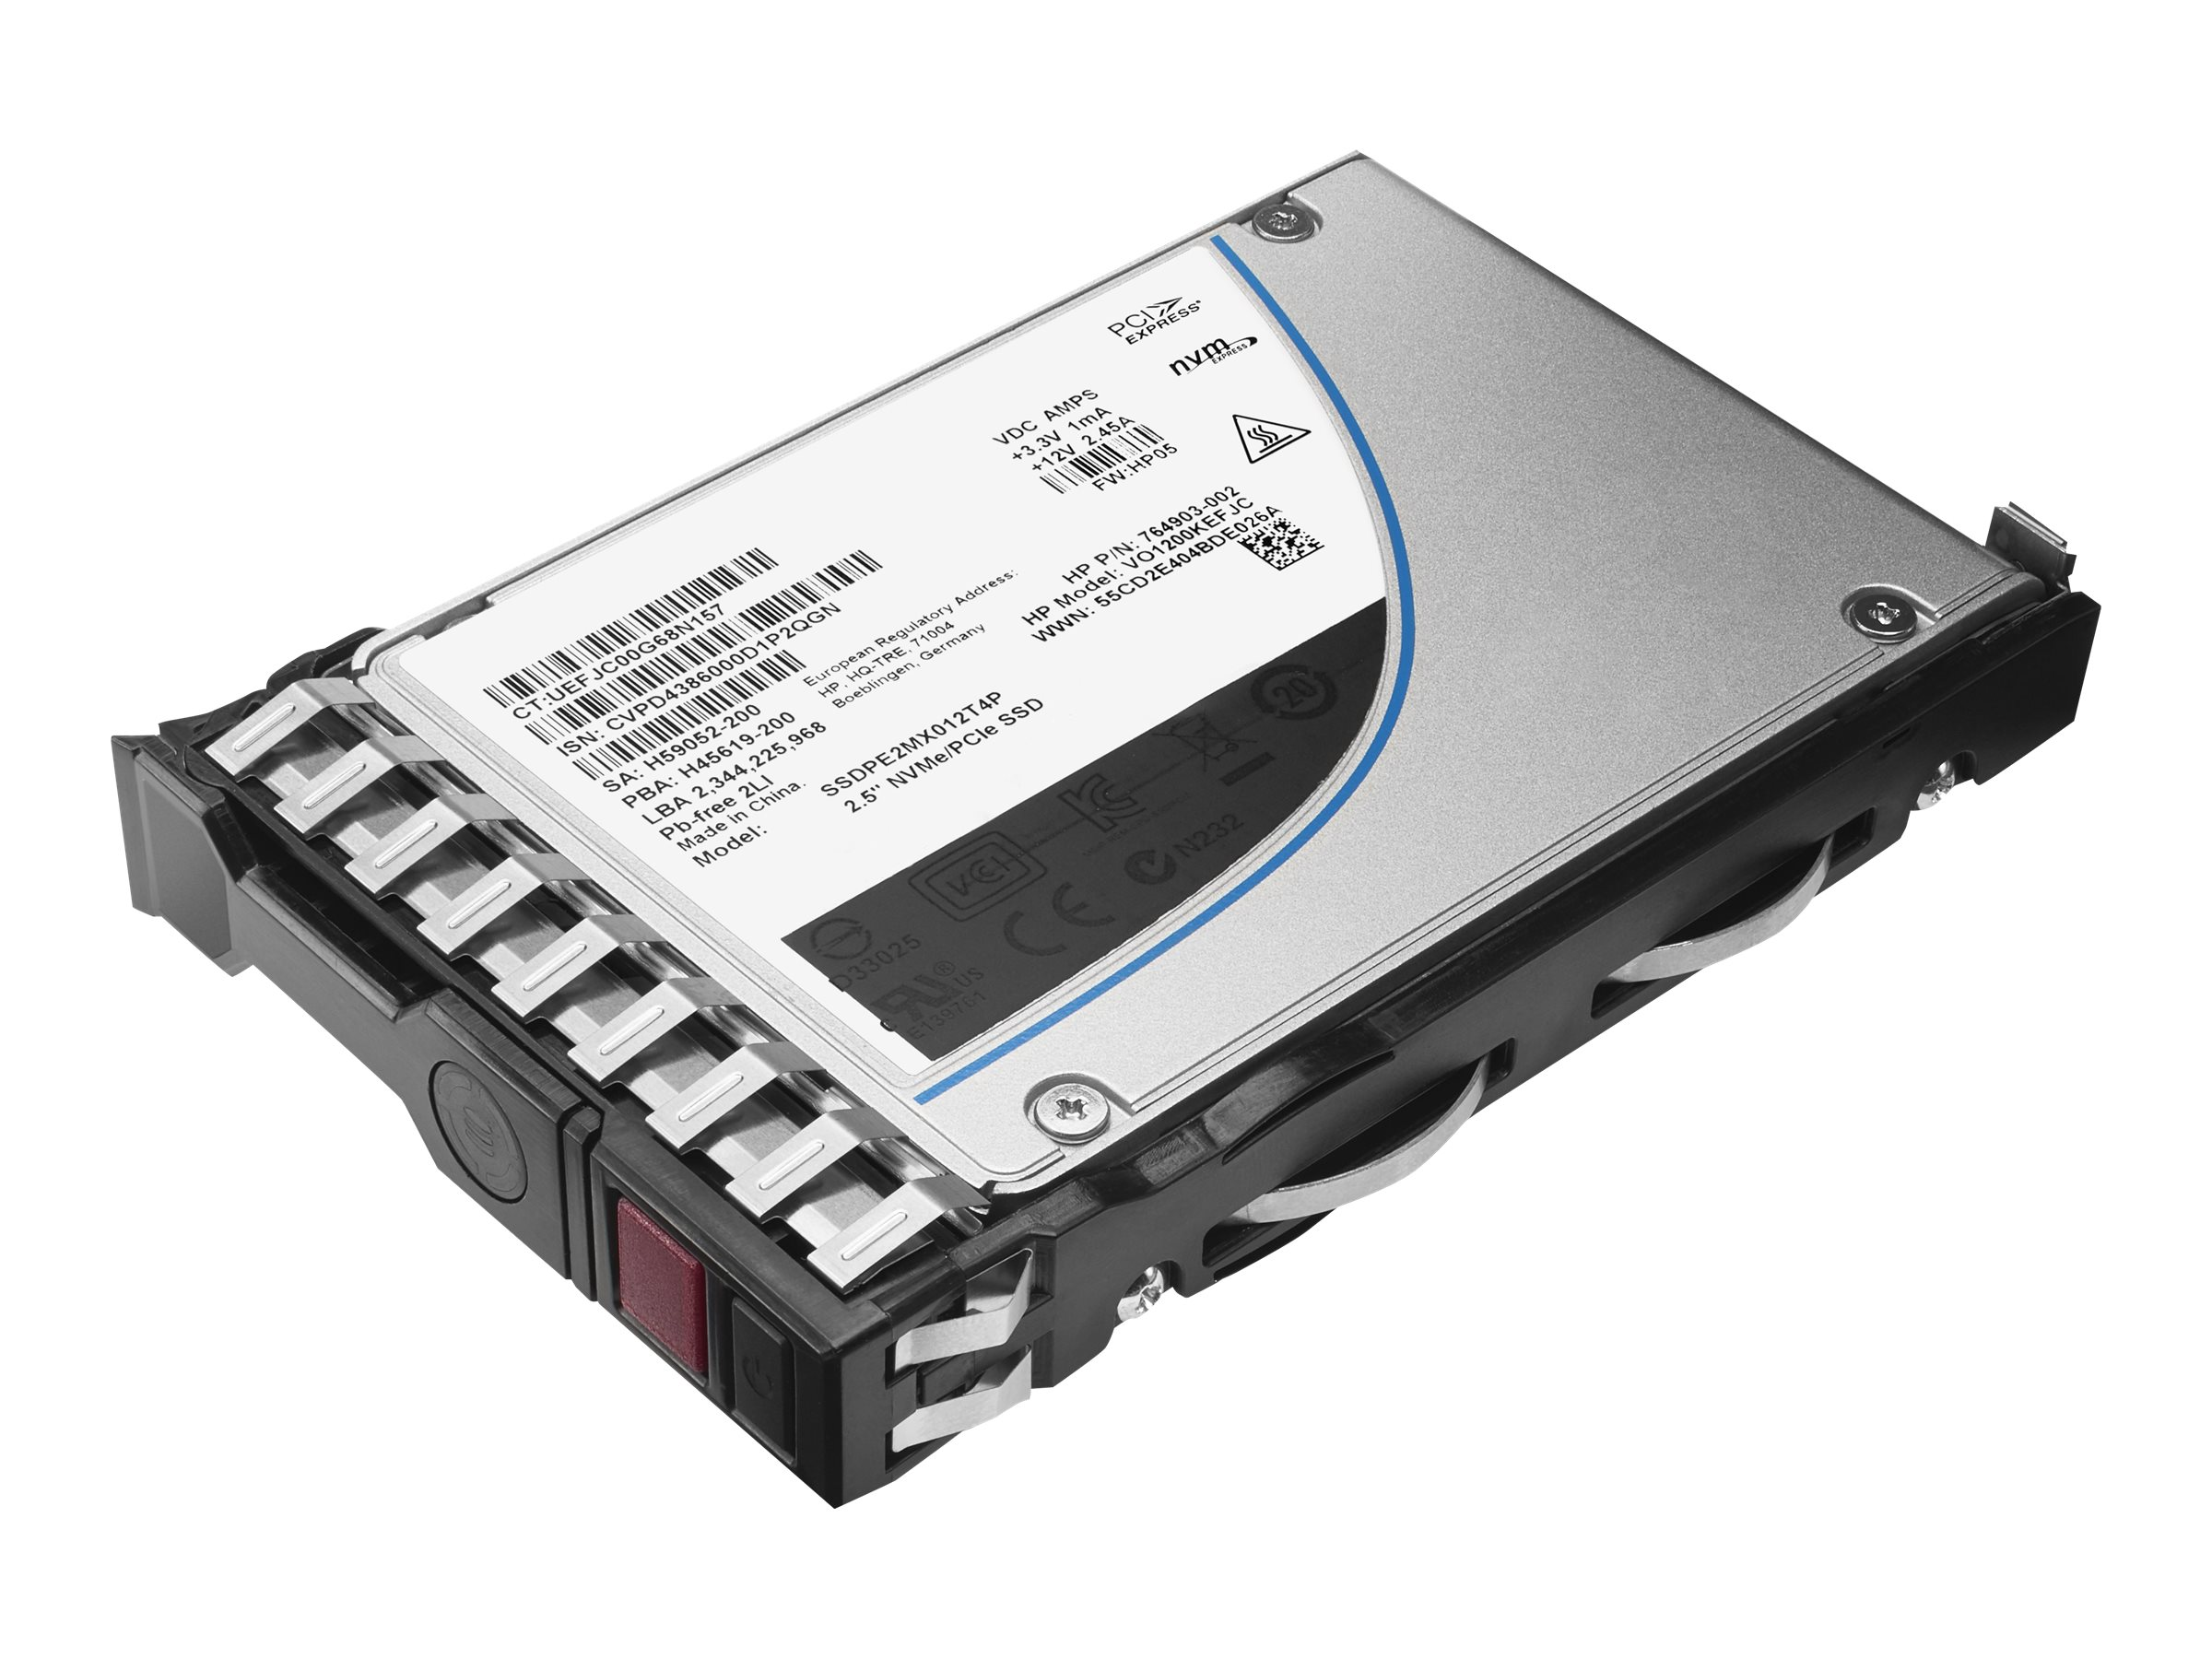 HPE 400GB SAS 12Gb s Mainstream Endurance LFF 3.5 LPC Enteprise Midline Solid State Drive